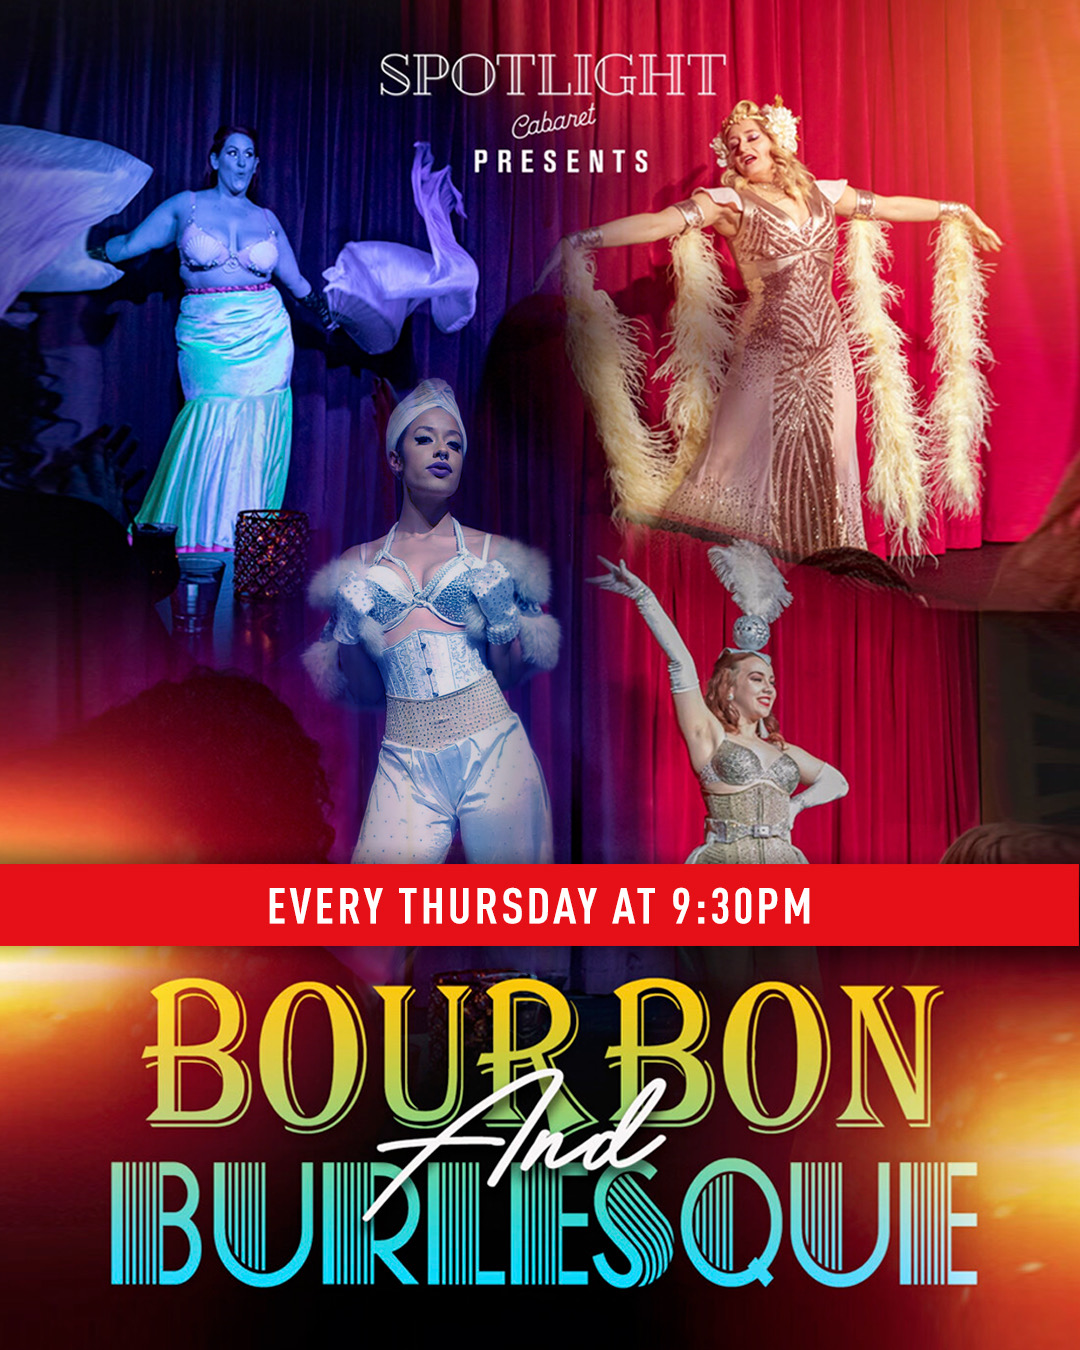 Bourbon and Burlesque SOLD OUT